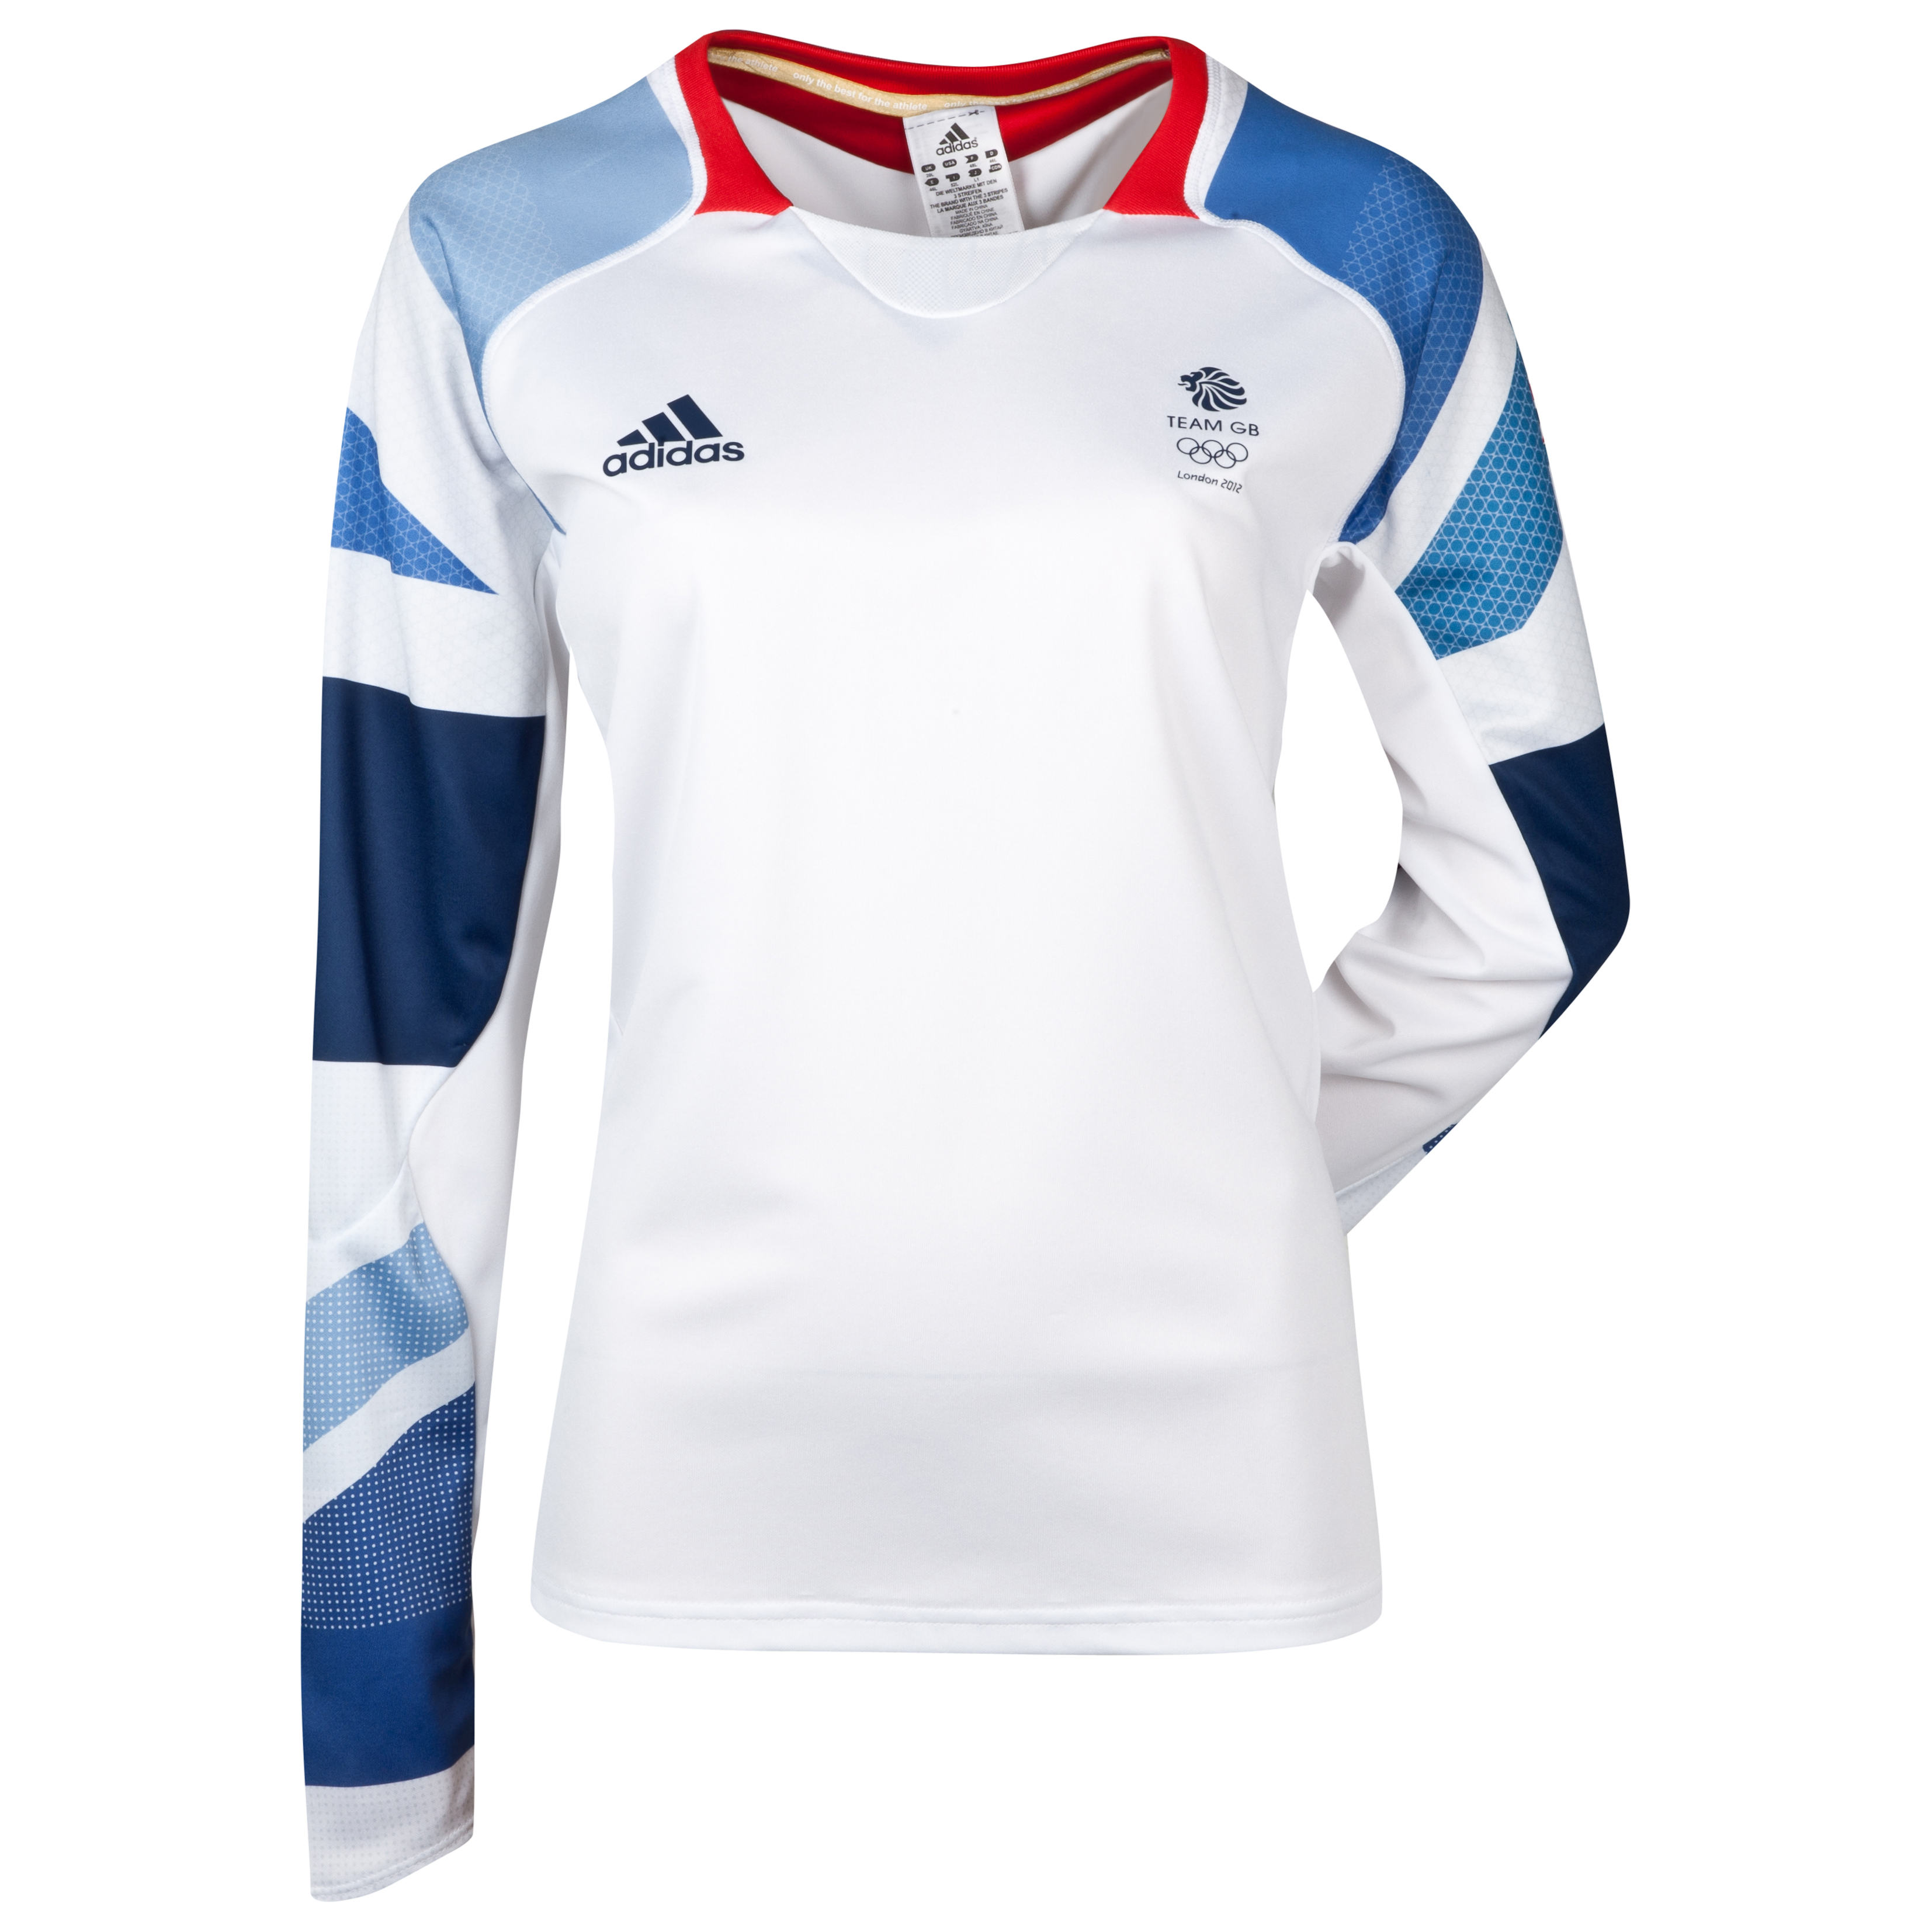 adidas Team GB Long Sleeve Climacool Perf T-Shirt - Womens - White/Vivid Red